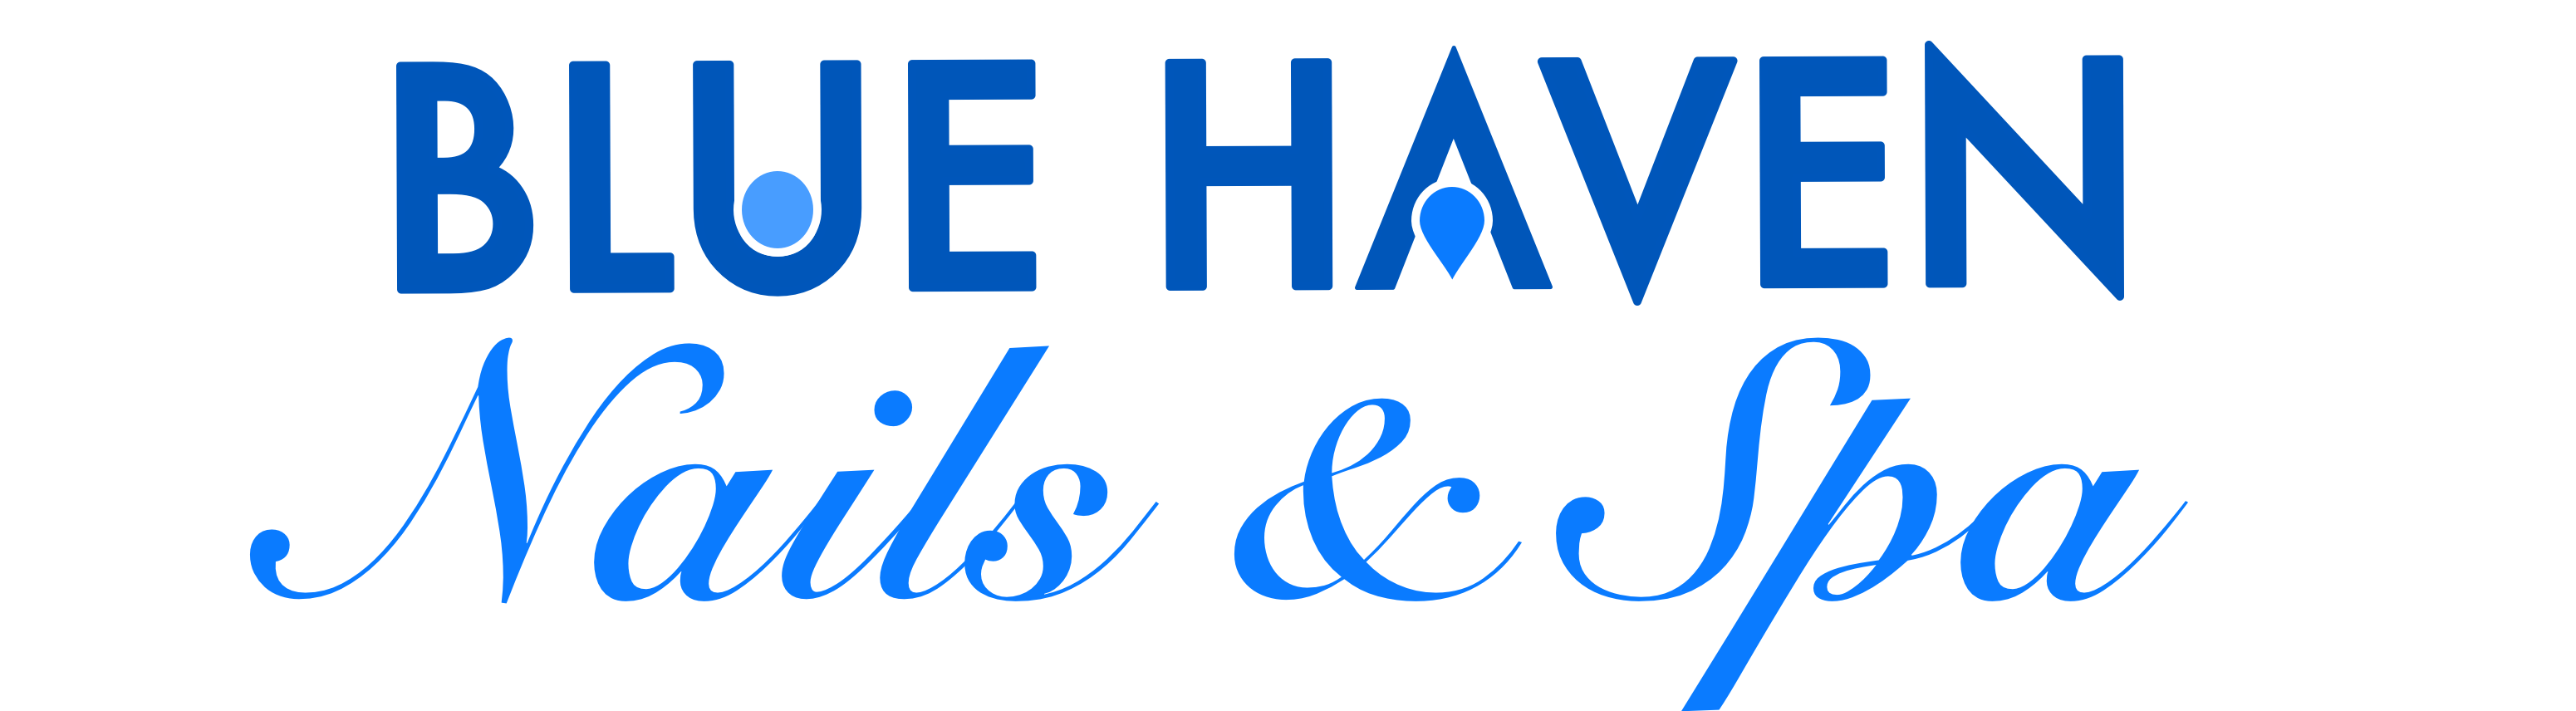 Blue Haven Nails & Spa